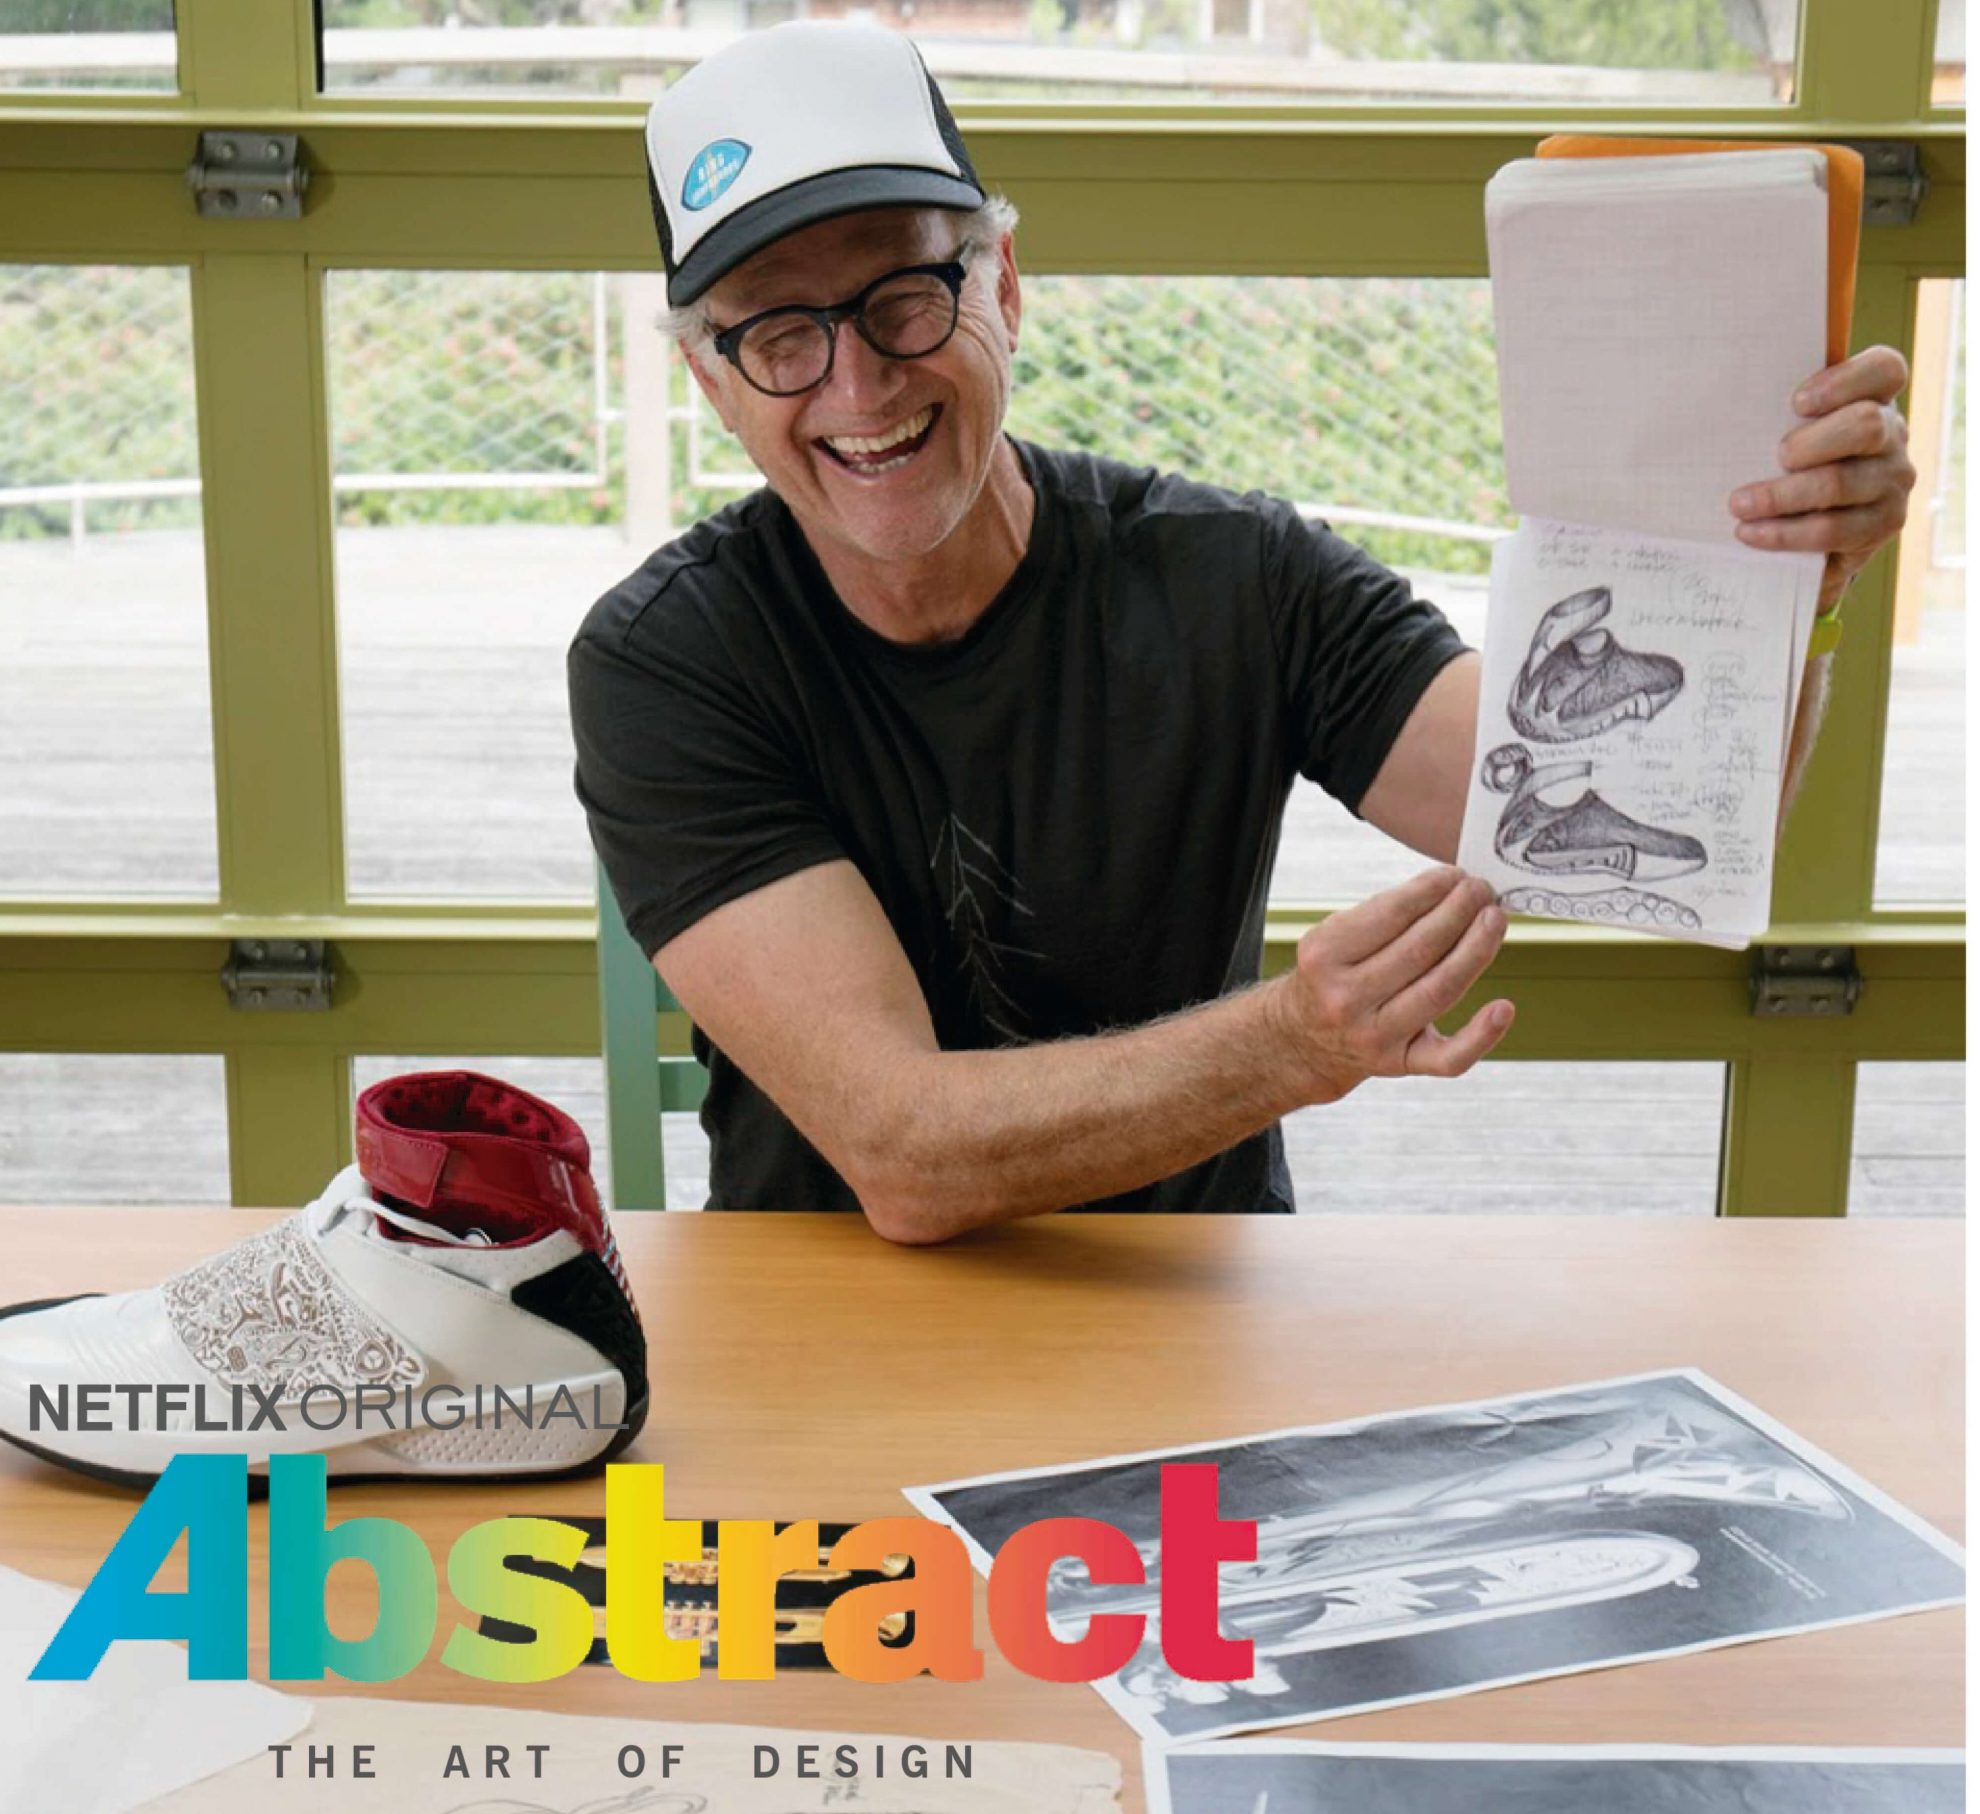 Abstract The Art of Design Tinker Hatfield Nike